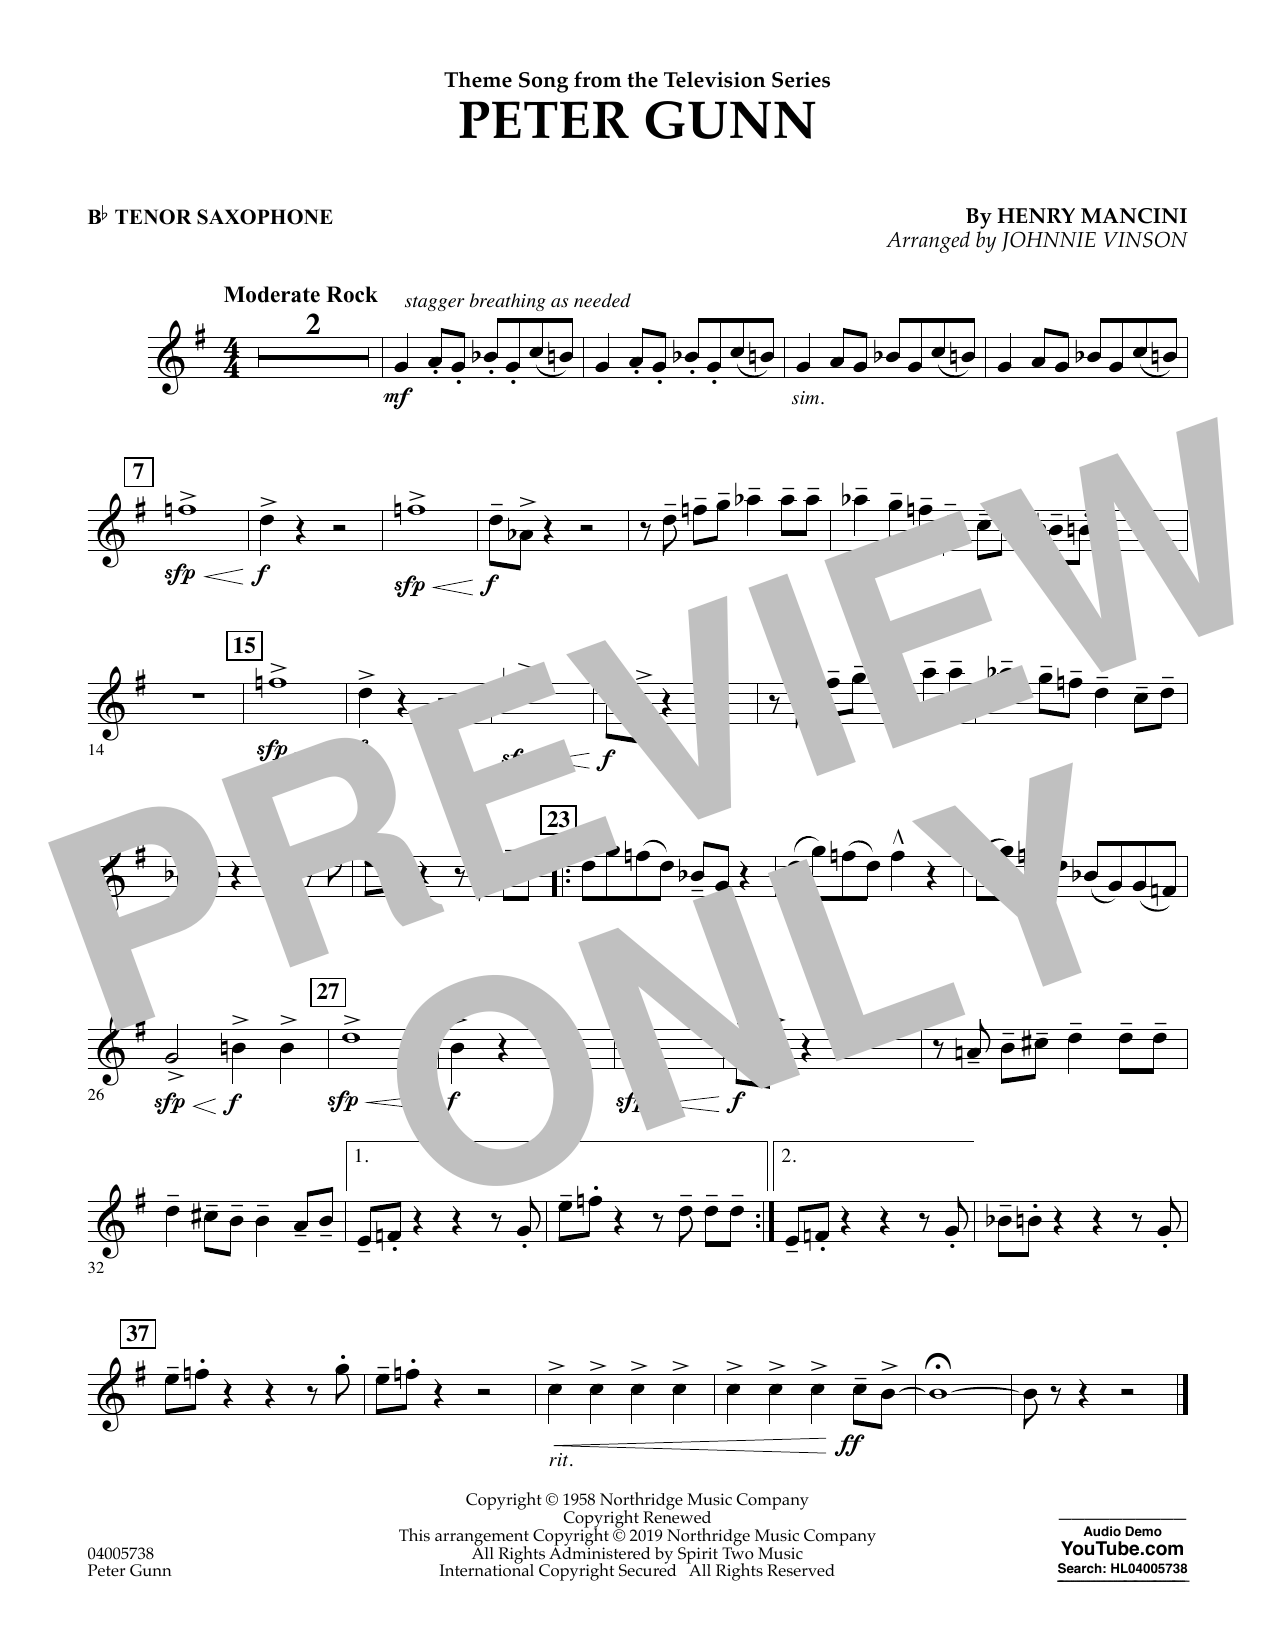 Henry Mancini Peter Gunn (arr. Johnnie Vinson) - Bb Tenor Saxophone sheet music preview music notes and score for Concert Band including 1 page(s)